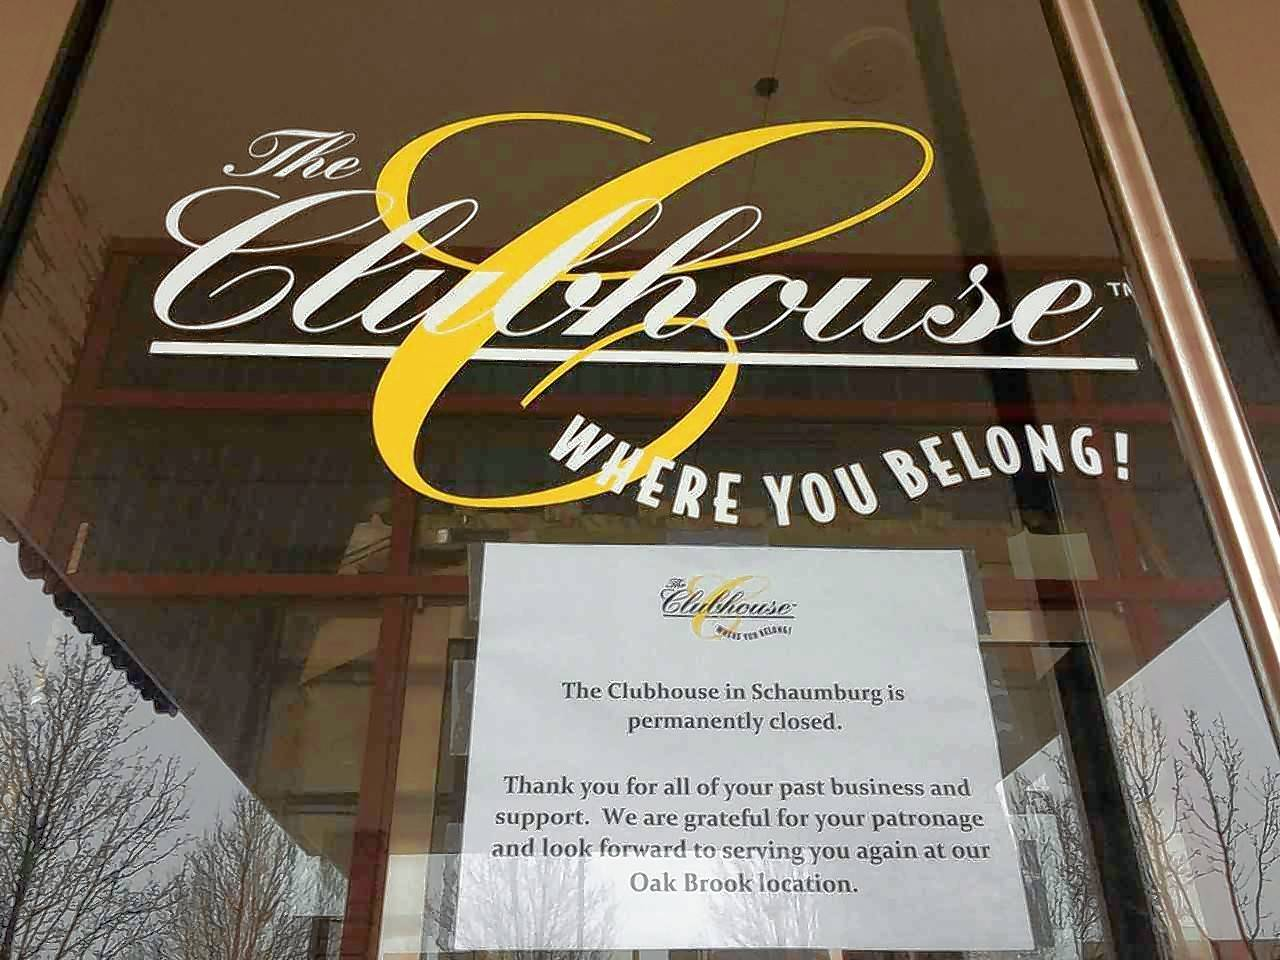 The Clubhouse restaurant in Schaumburg closes